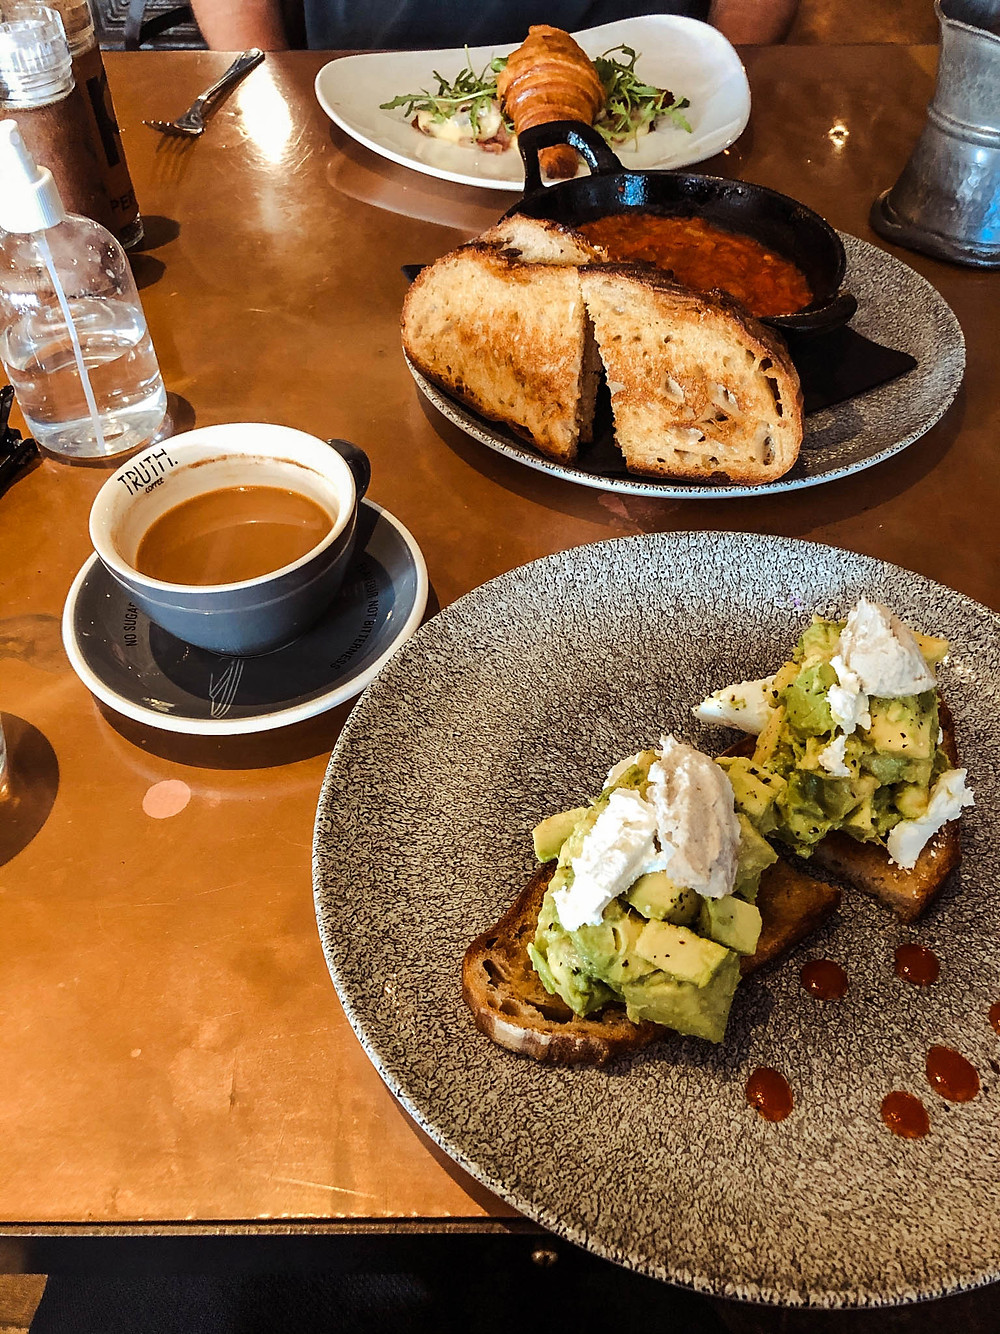 Jenna opting for the millennial-style avocado toast - basically two full avocados!